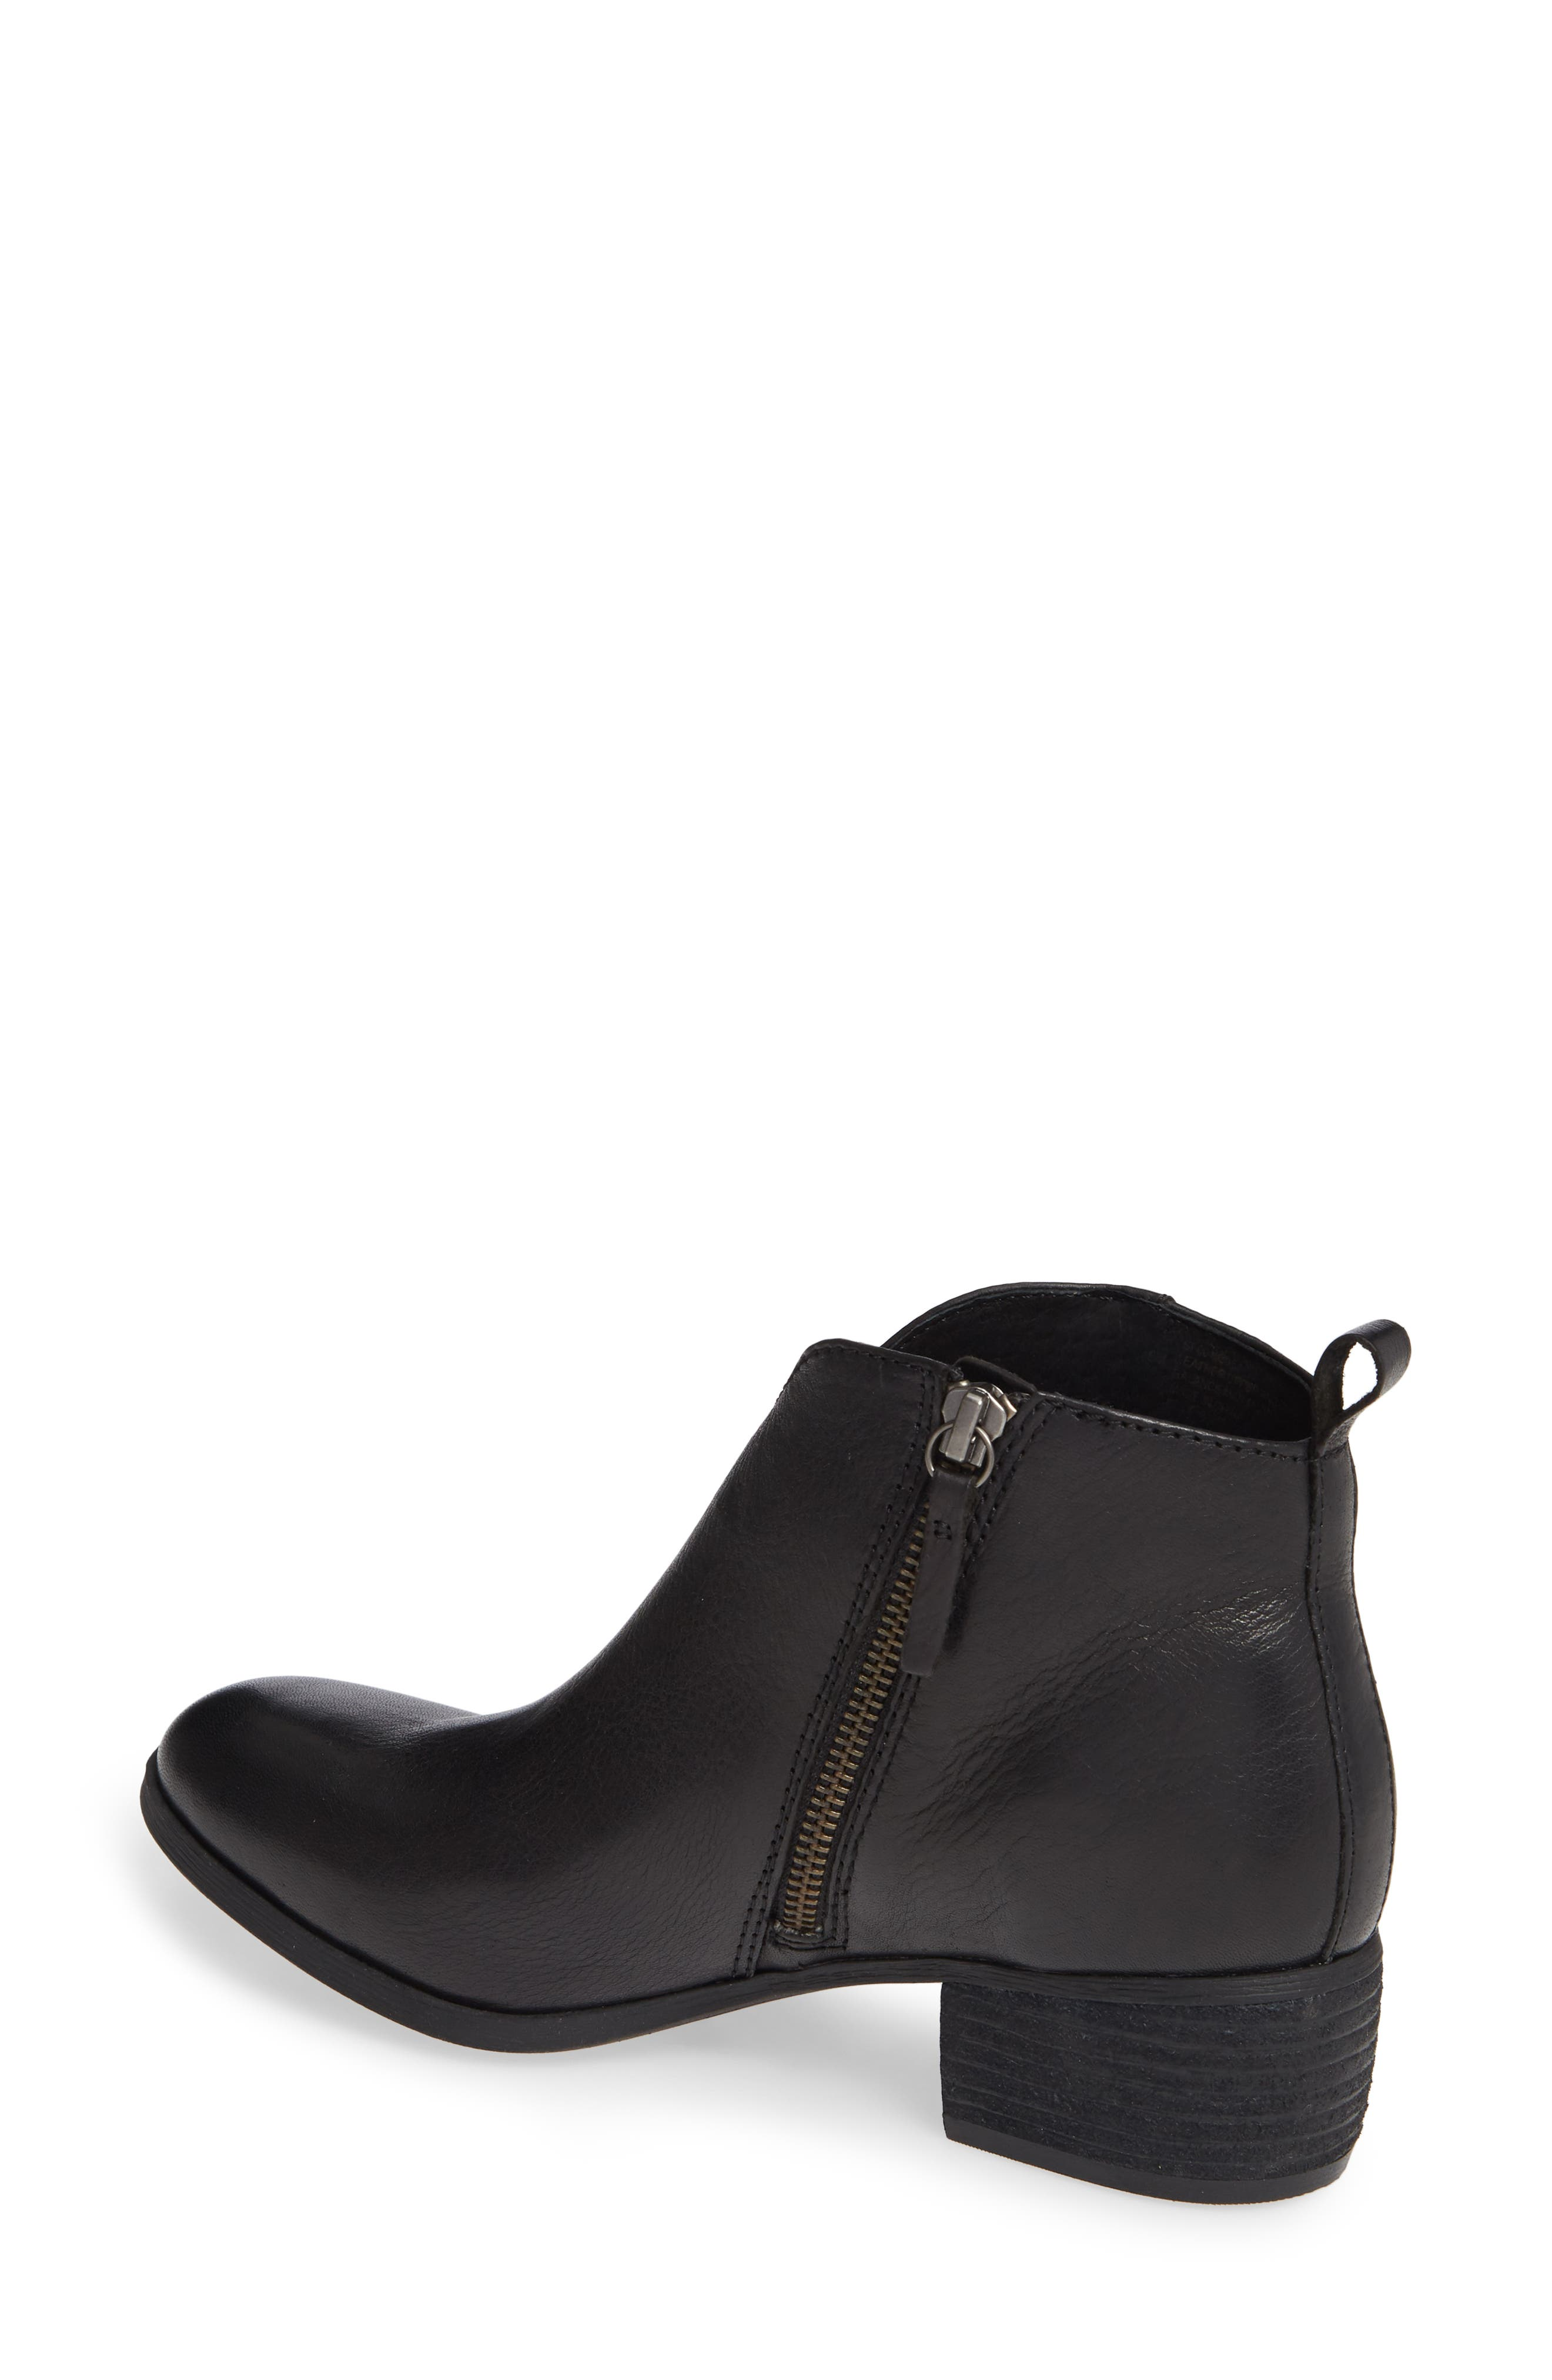 Coleta Bootie,                             Alternate thumbnail 2, color,                             BLACK LEATHER